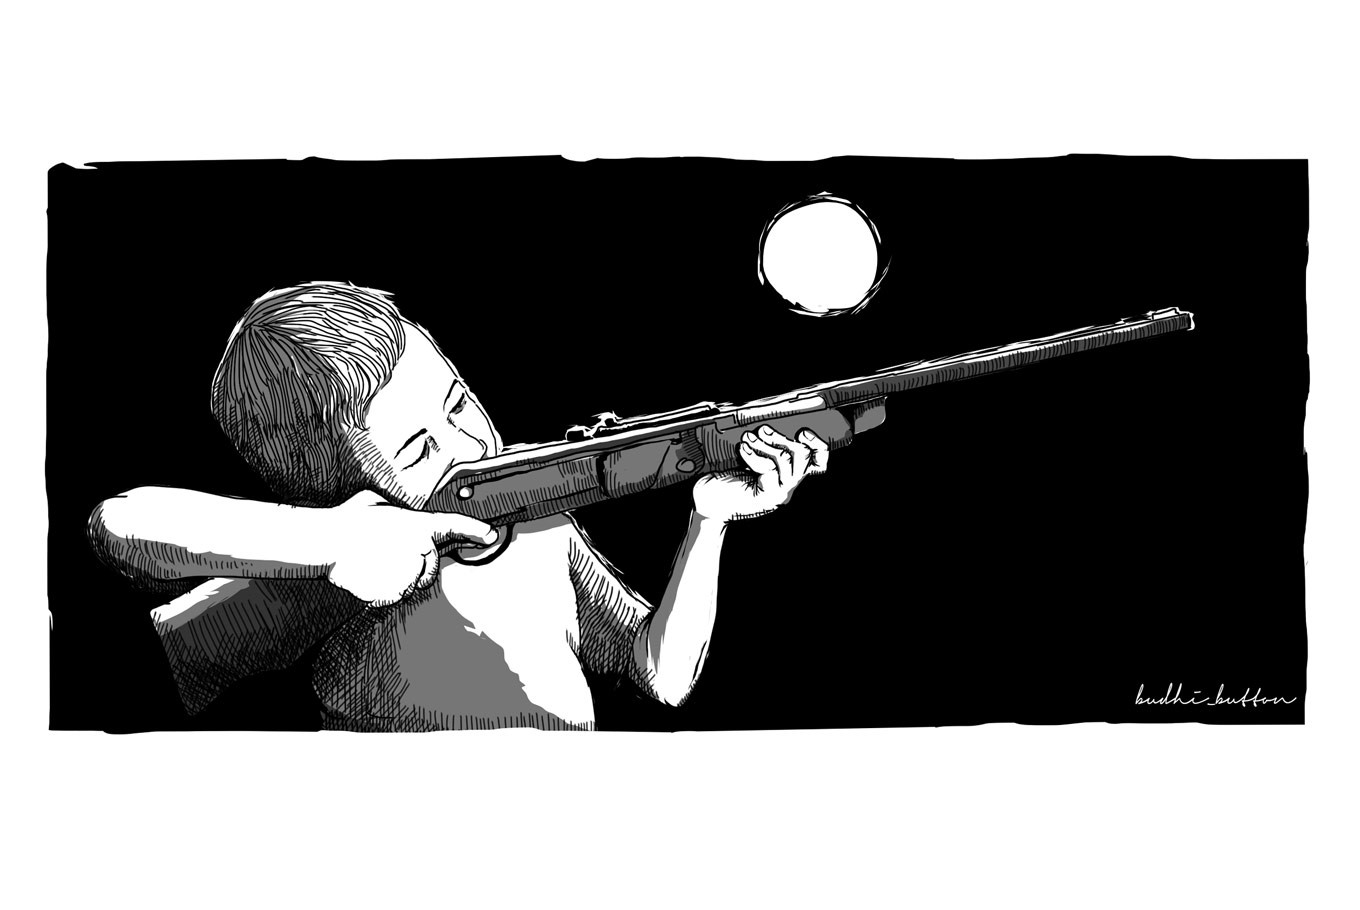 Short Story: The Shooter